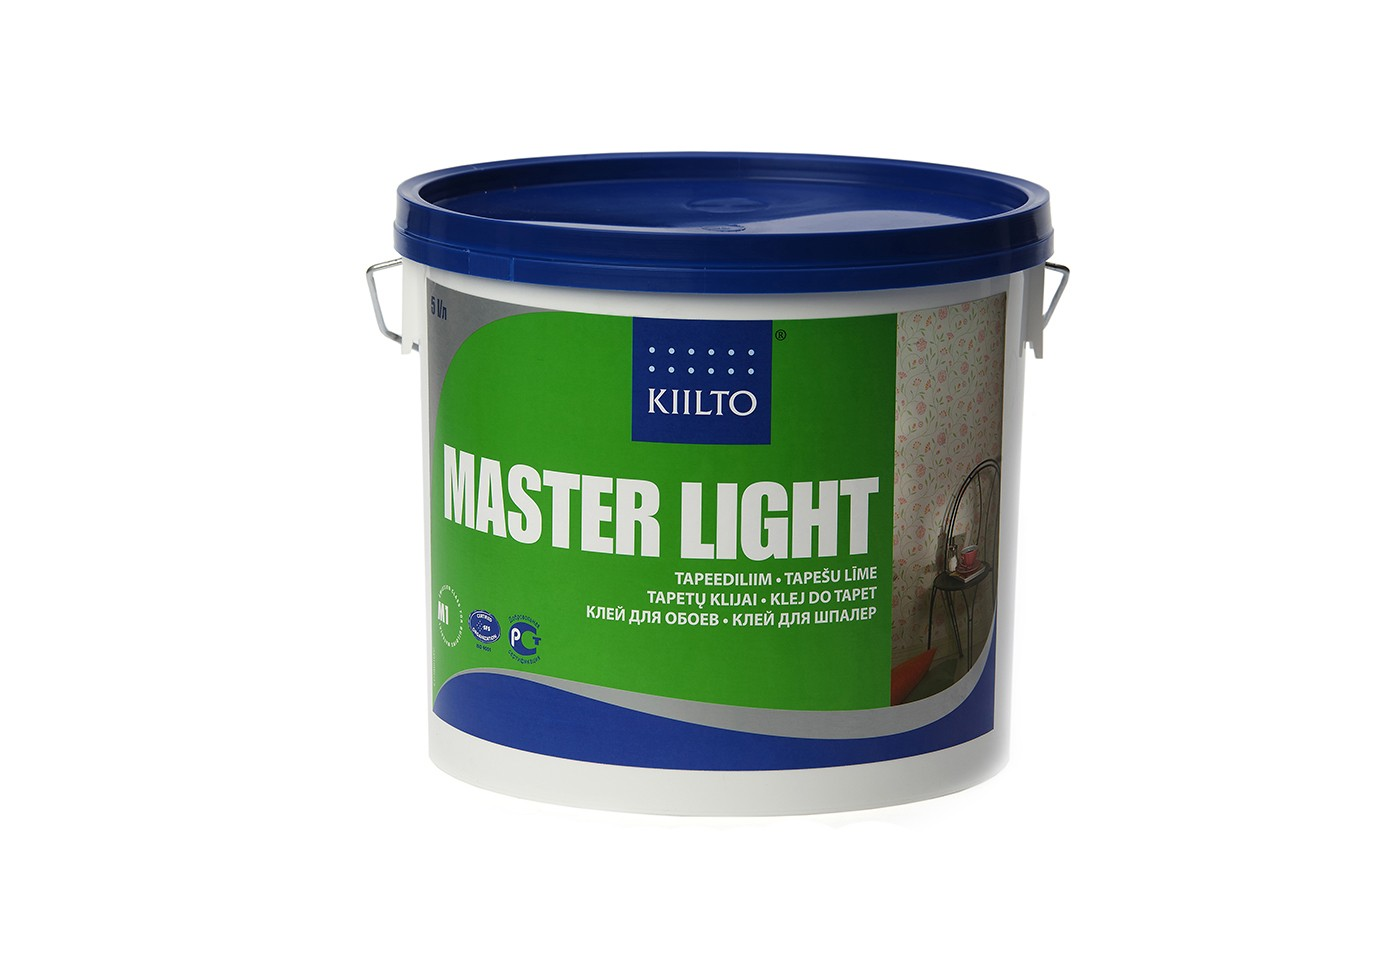 kiilto master light 1 - *Kiilto Master Light pabertapeediliim, 5L